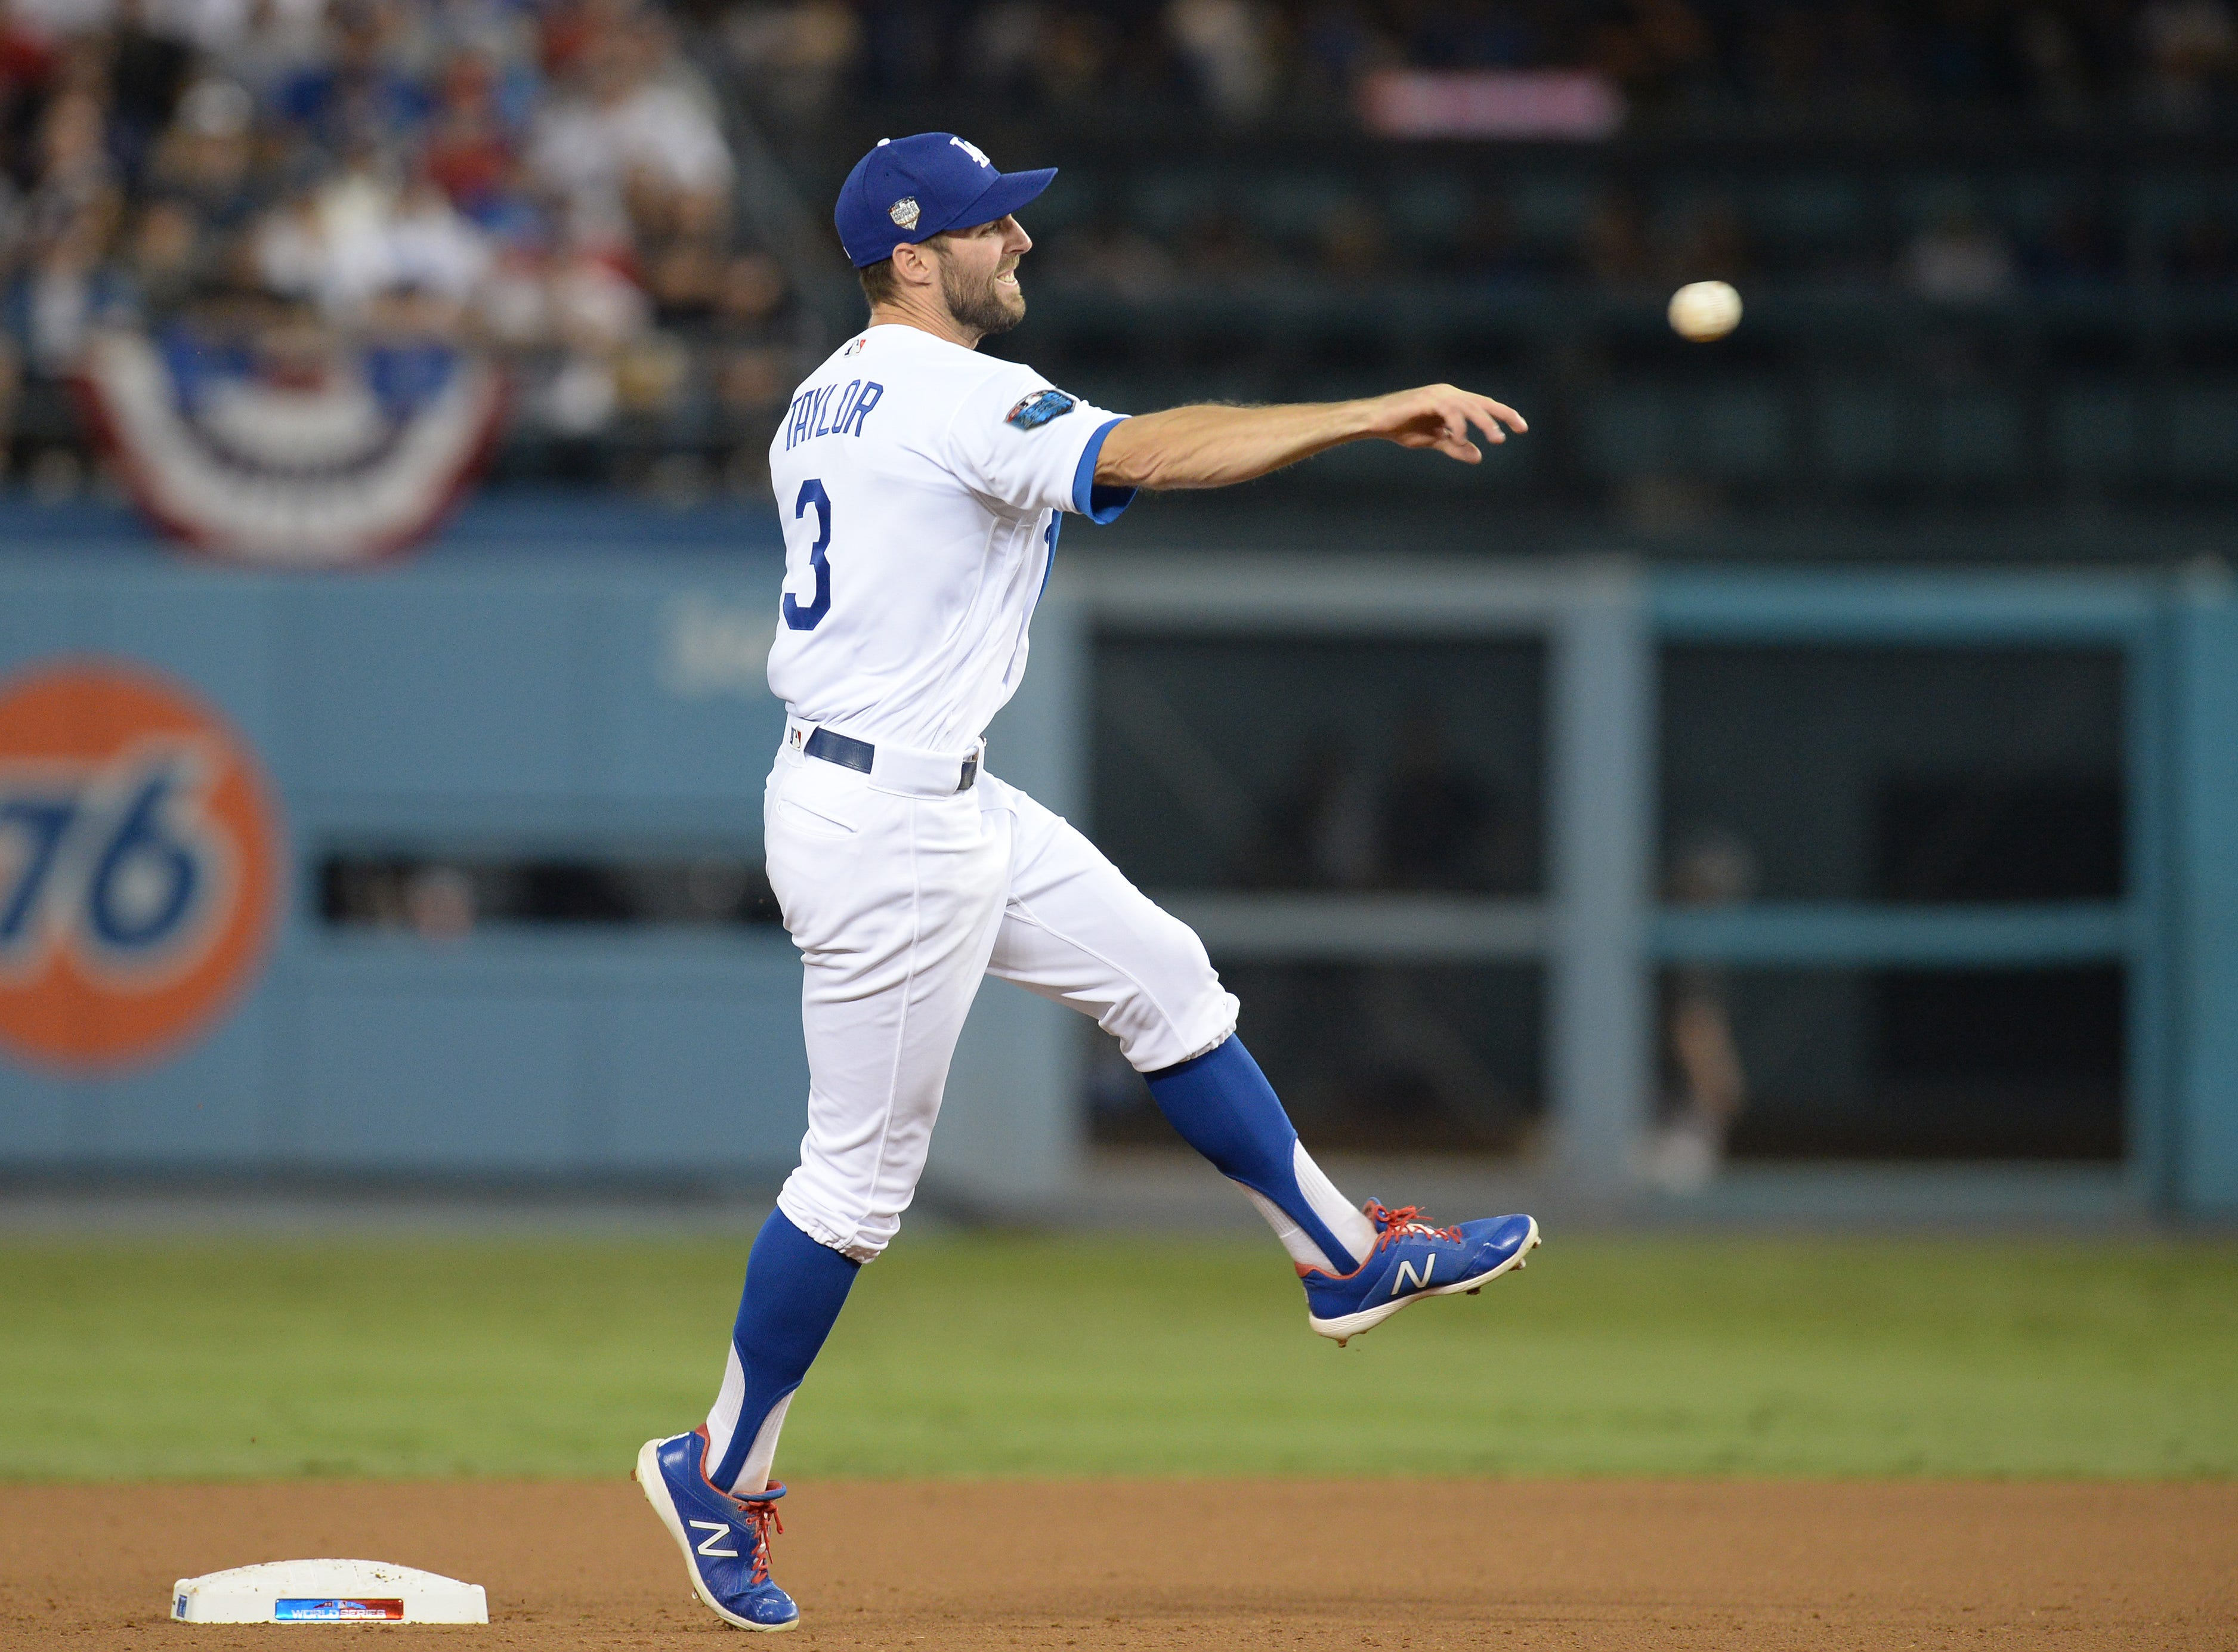 Game 3 at Dodger Stadium: Second baseman Chris Taylor makes a throw to first in the sixth inning.